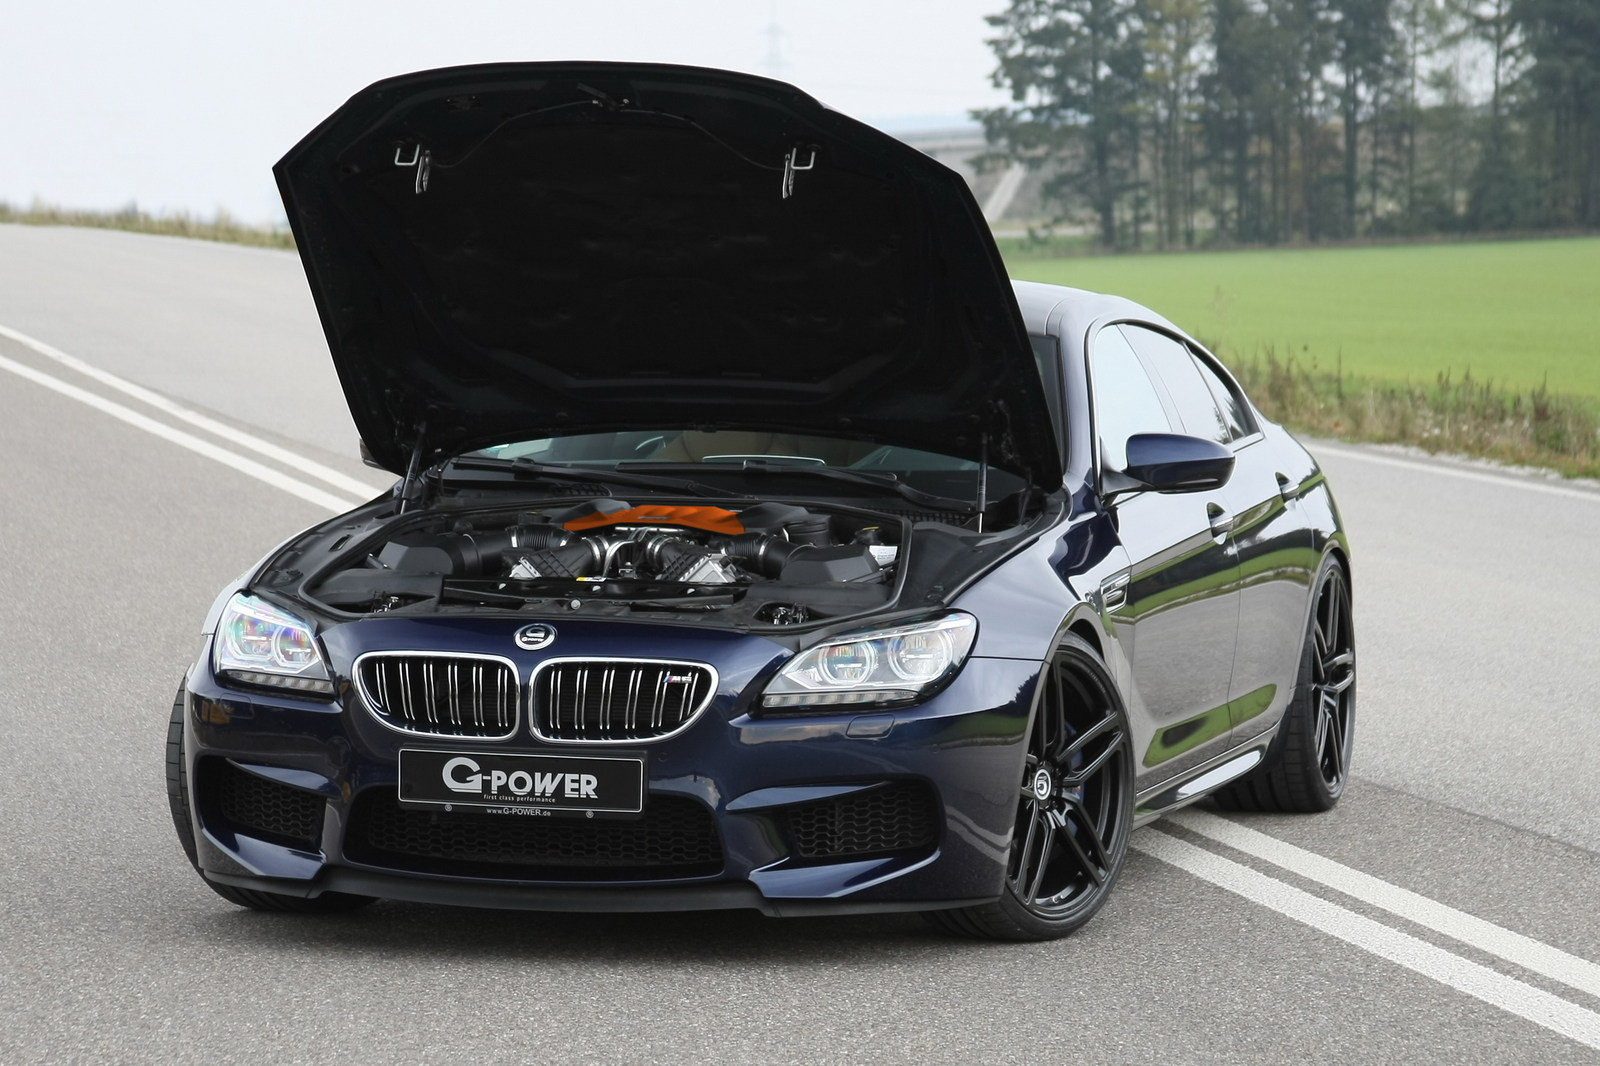 2016 bmw m6 gran coupe by g power picture 671577 car review top speed. Black Bedroom Furniture Sets. Home Design Ideas